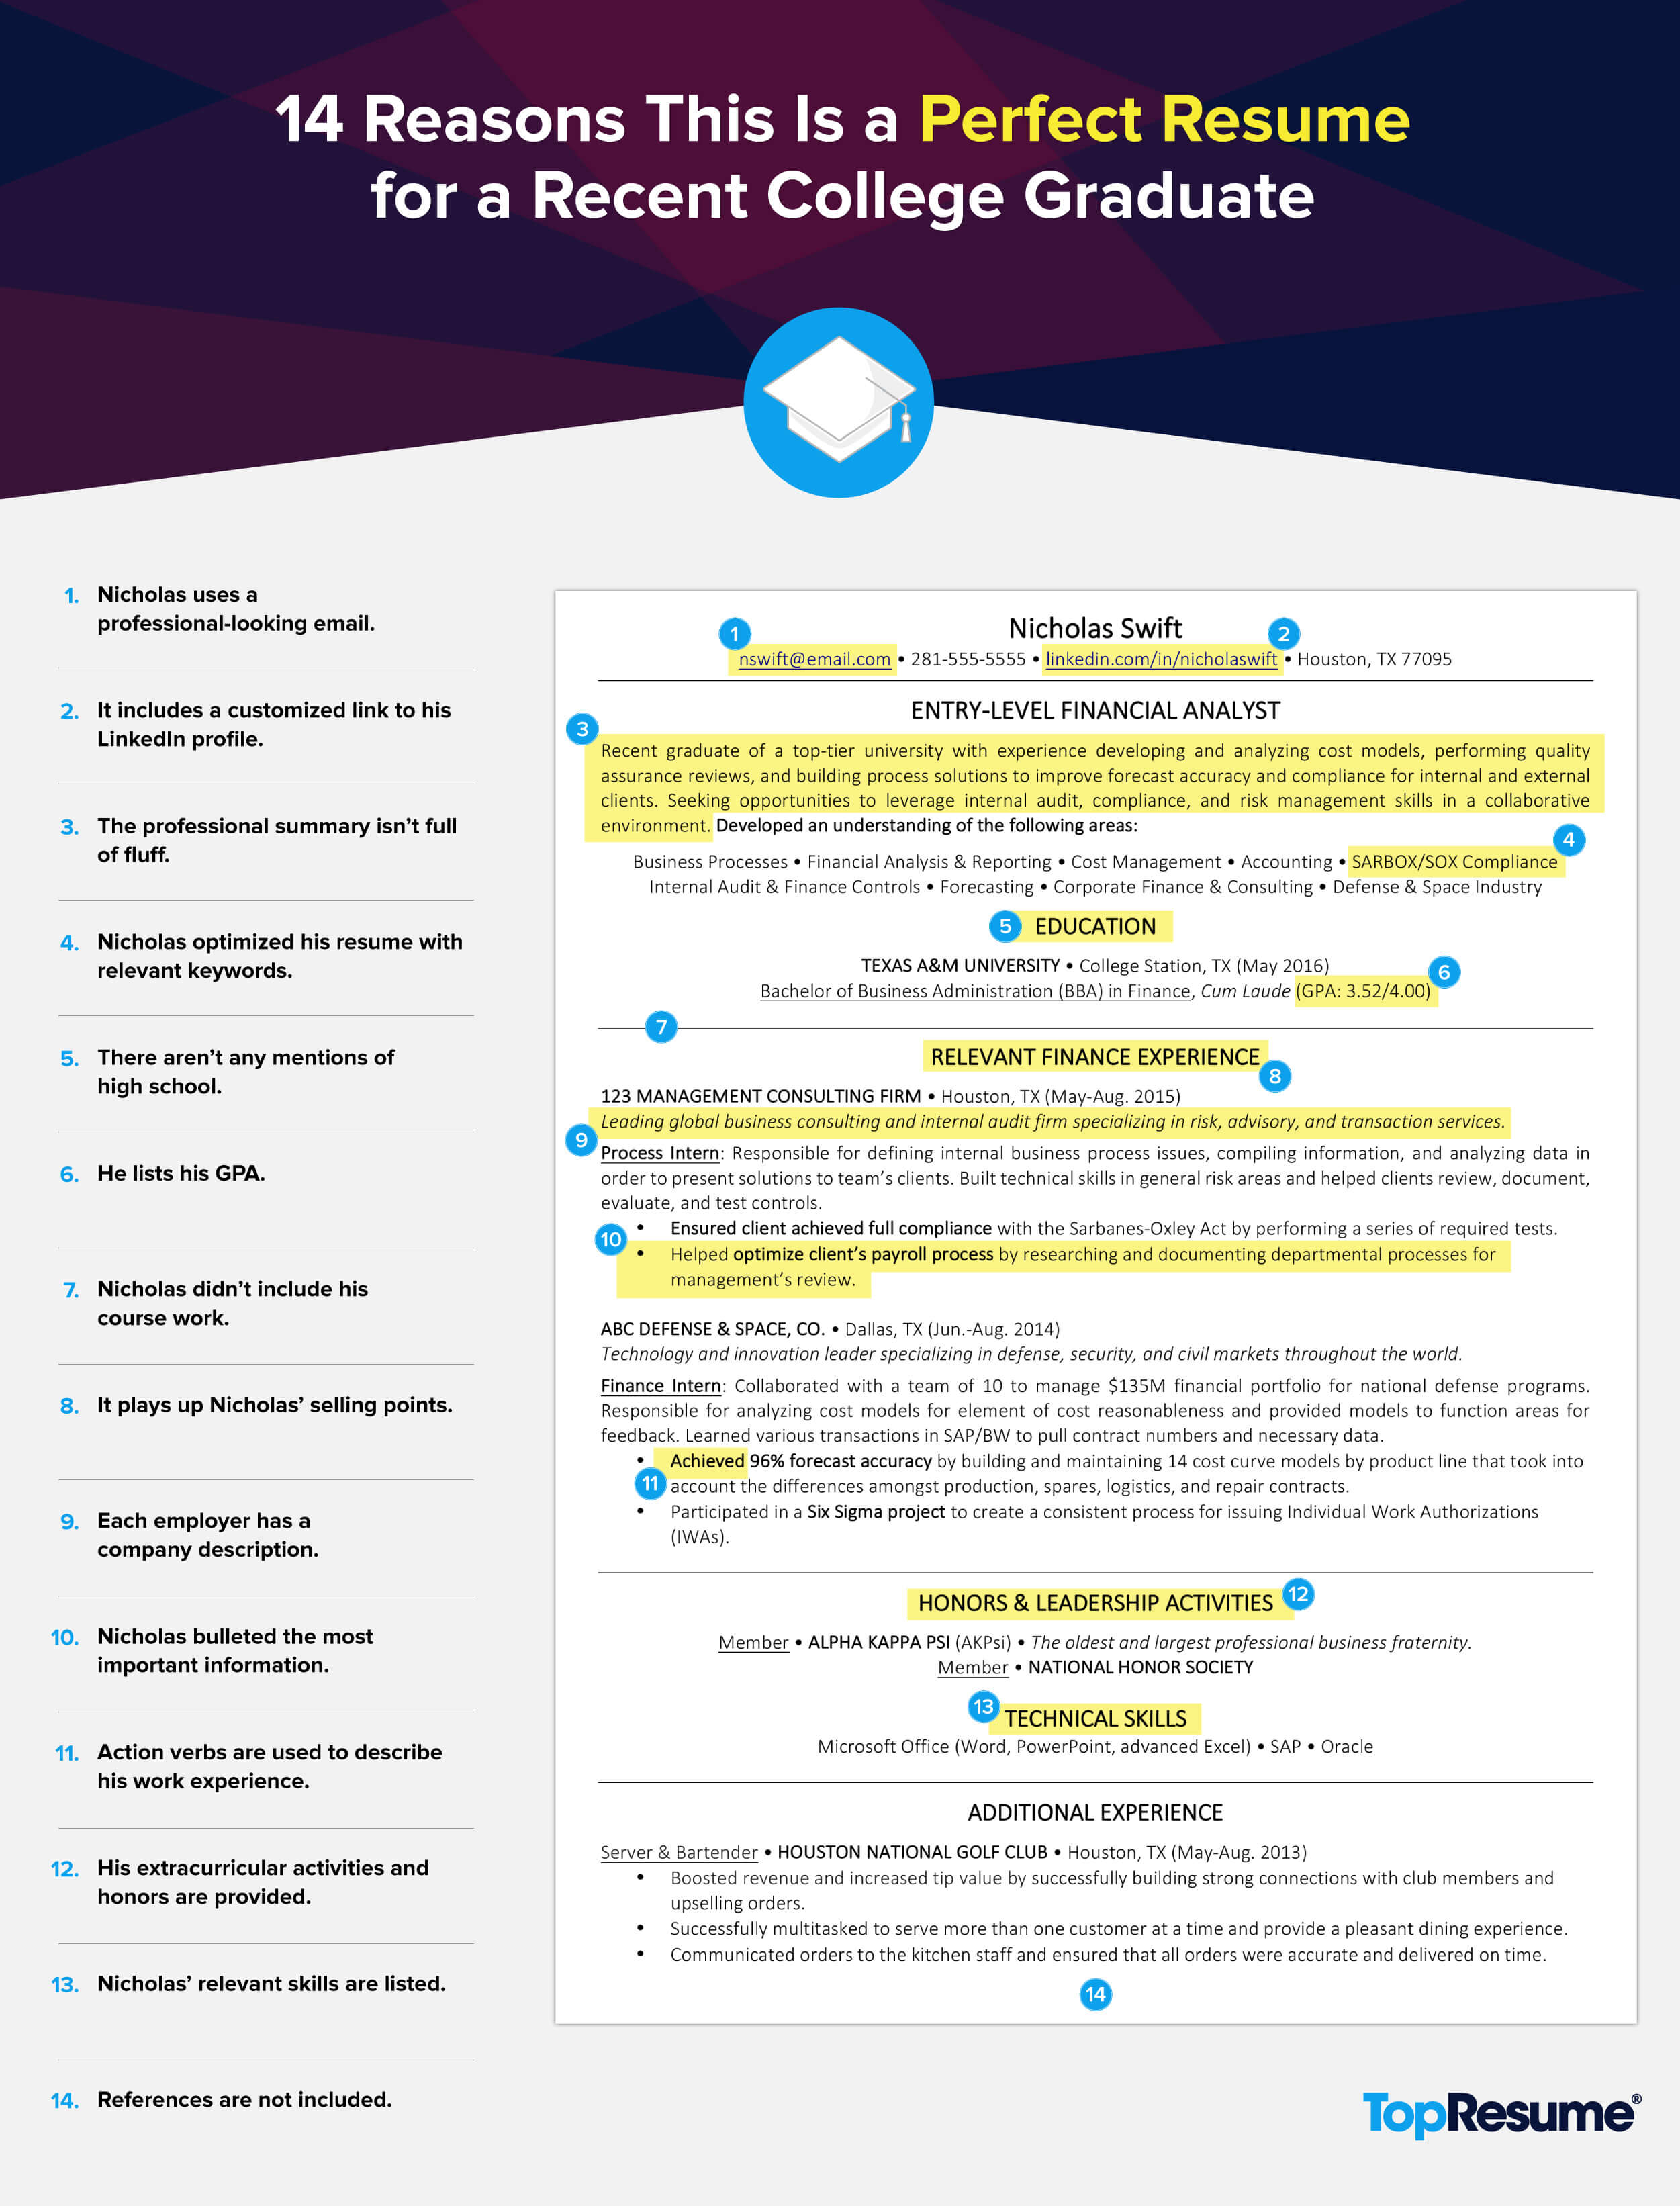 14 reasons this is a perfect recent college graduate resume topresume perfect recent college graduate resume altavistaventures Images